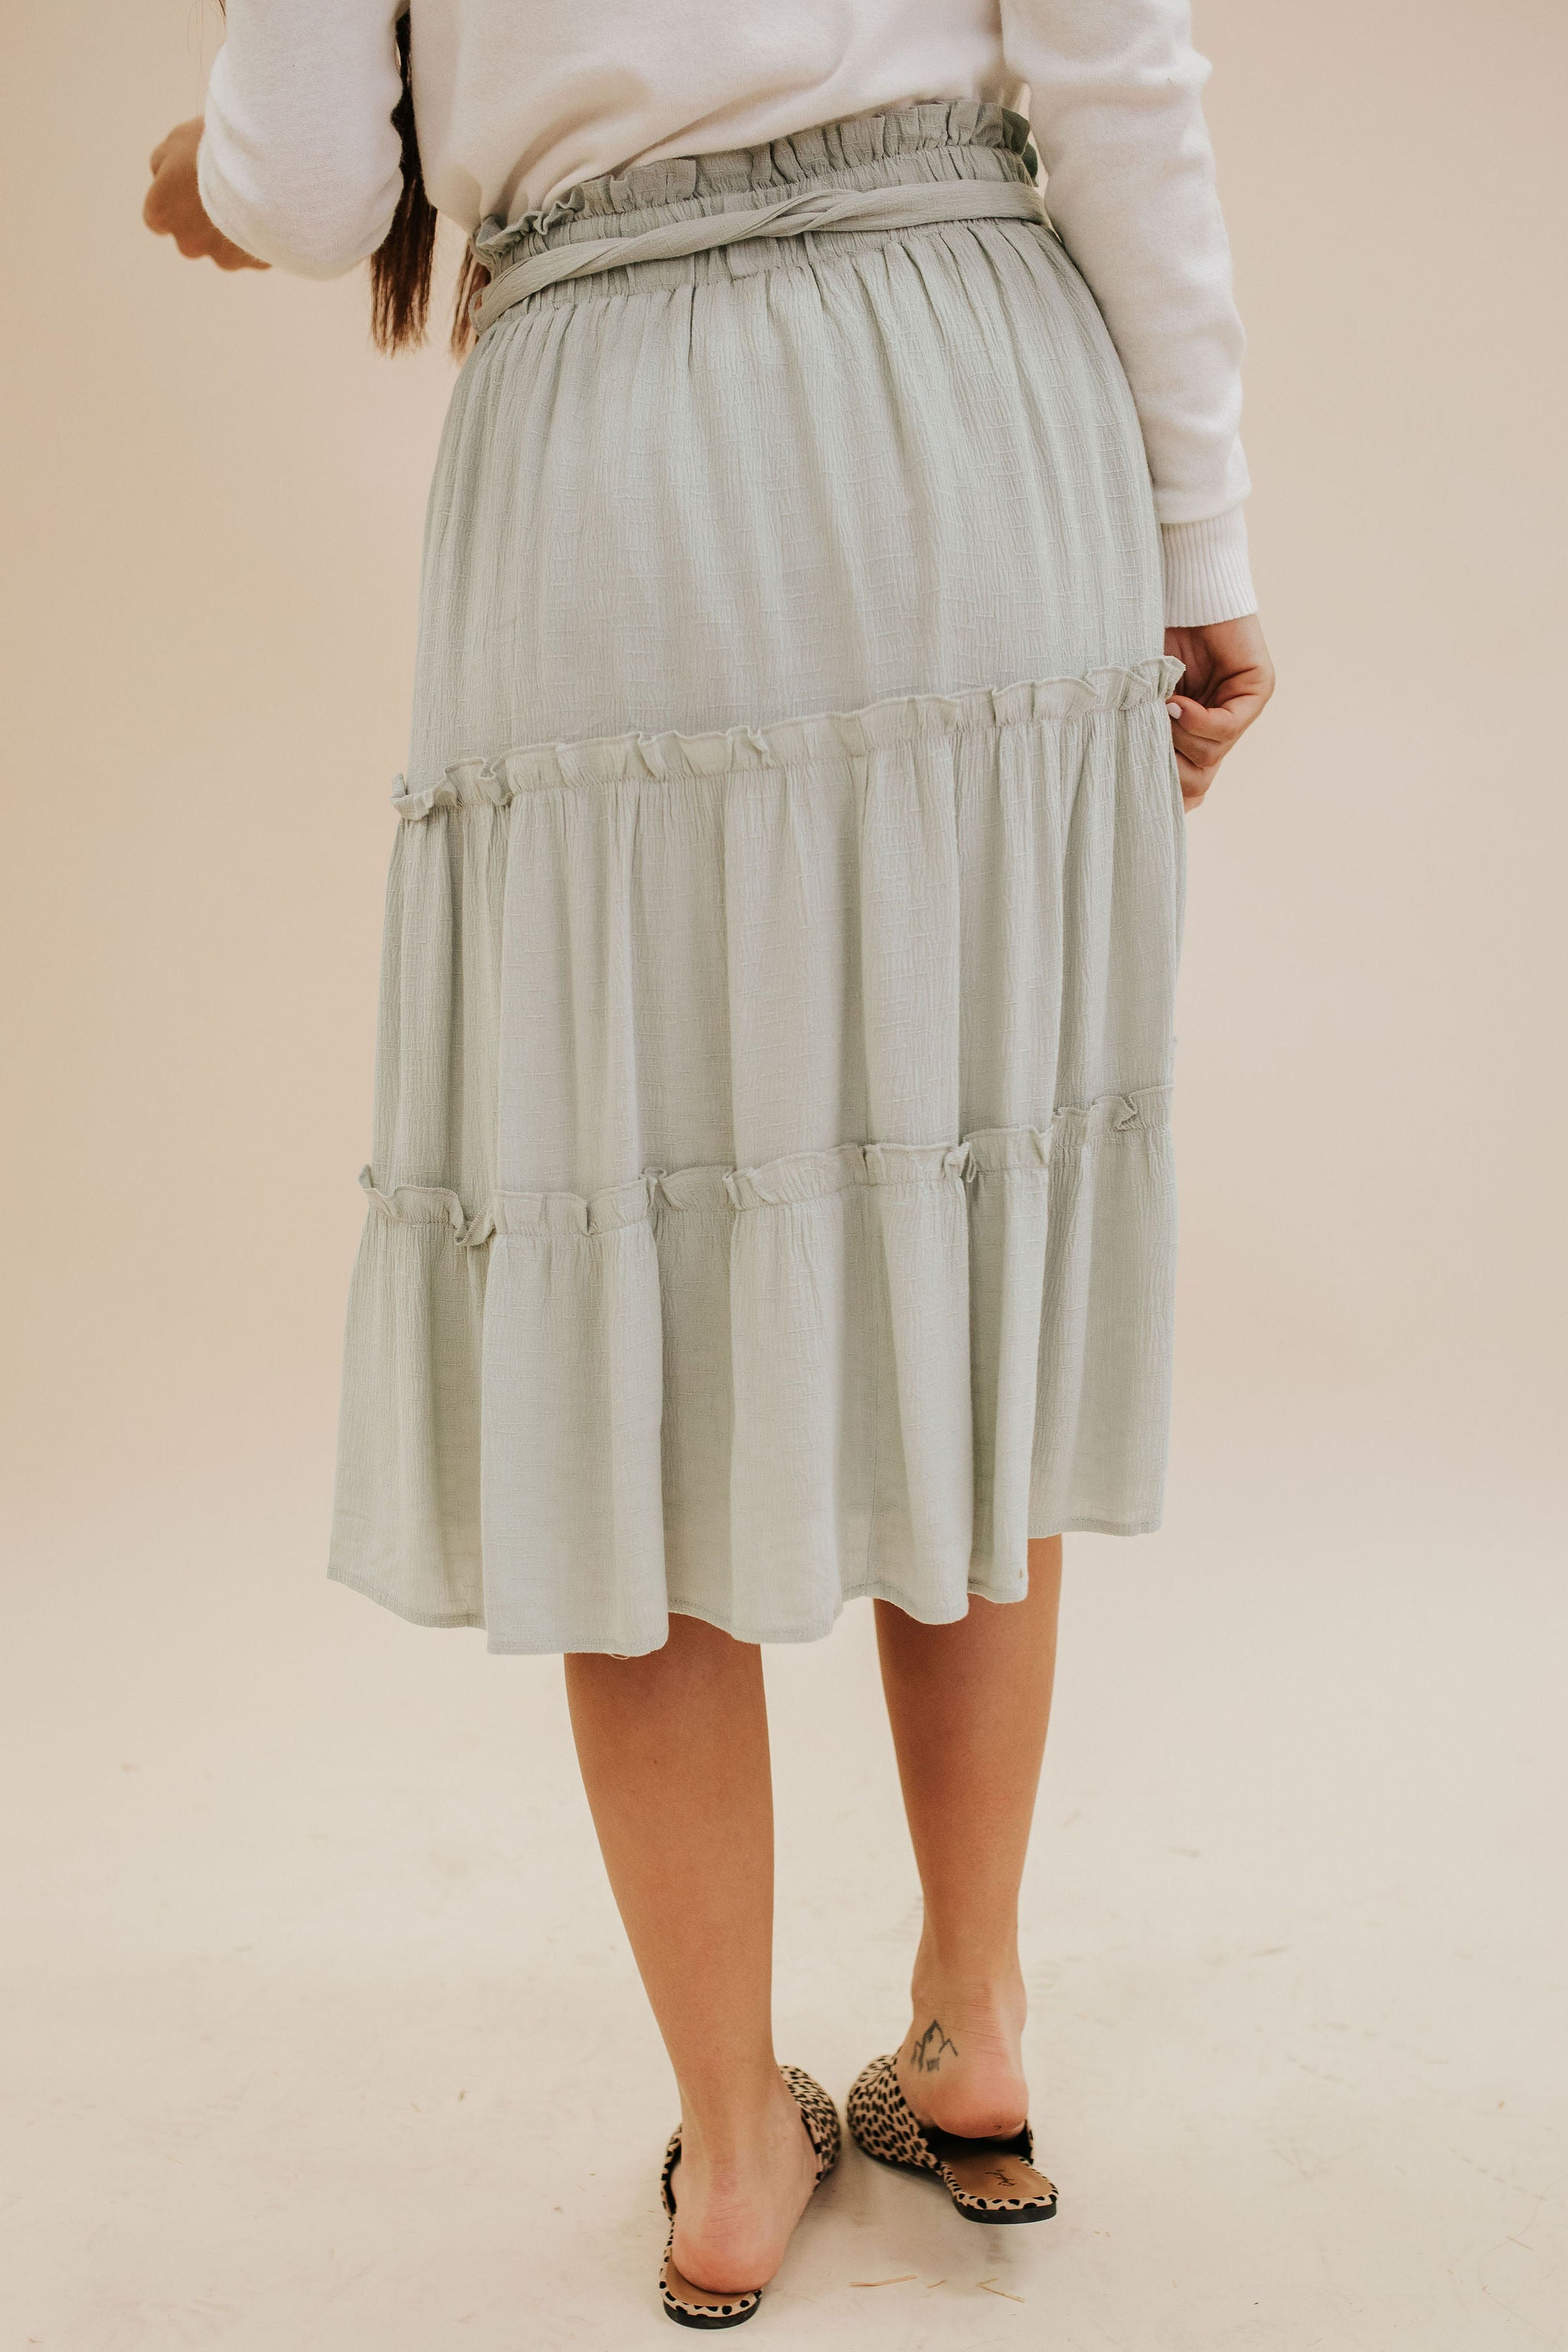 THE AFTERGLOW RUFFLE SKIRT IN LIGHT SAGE